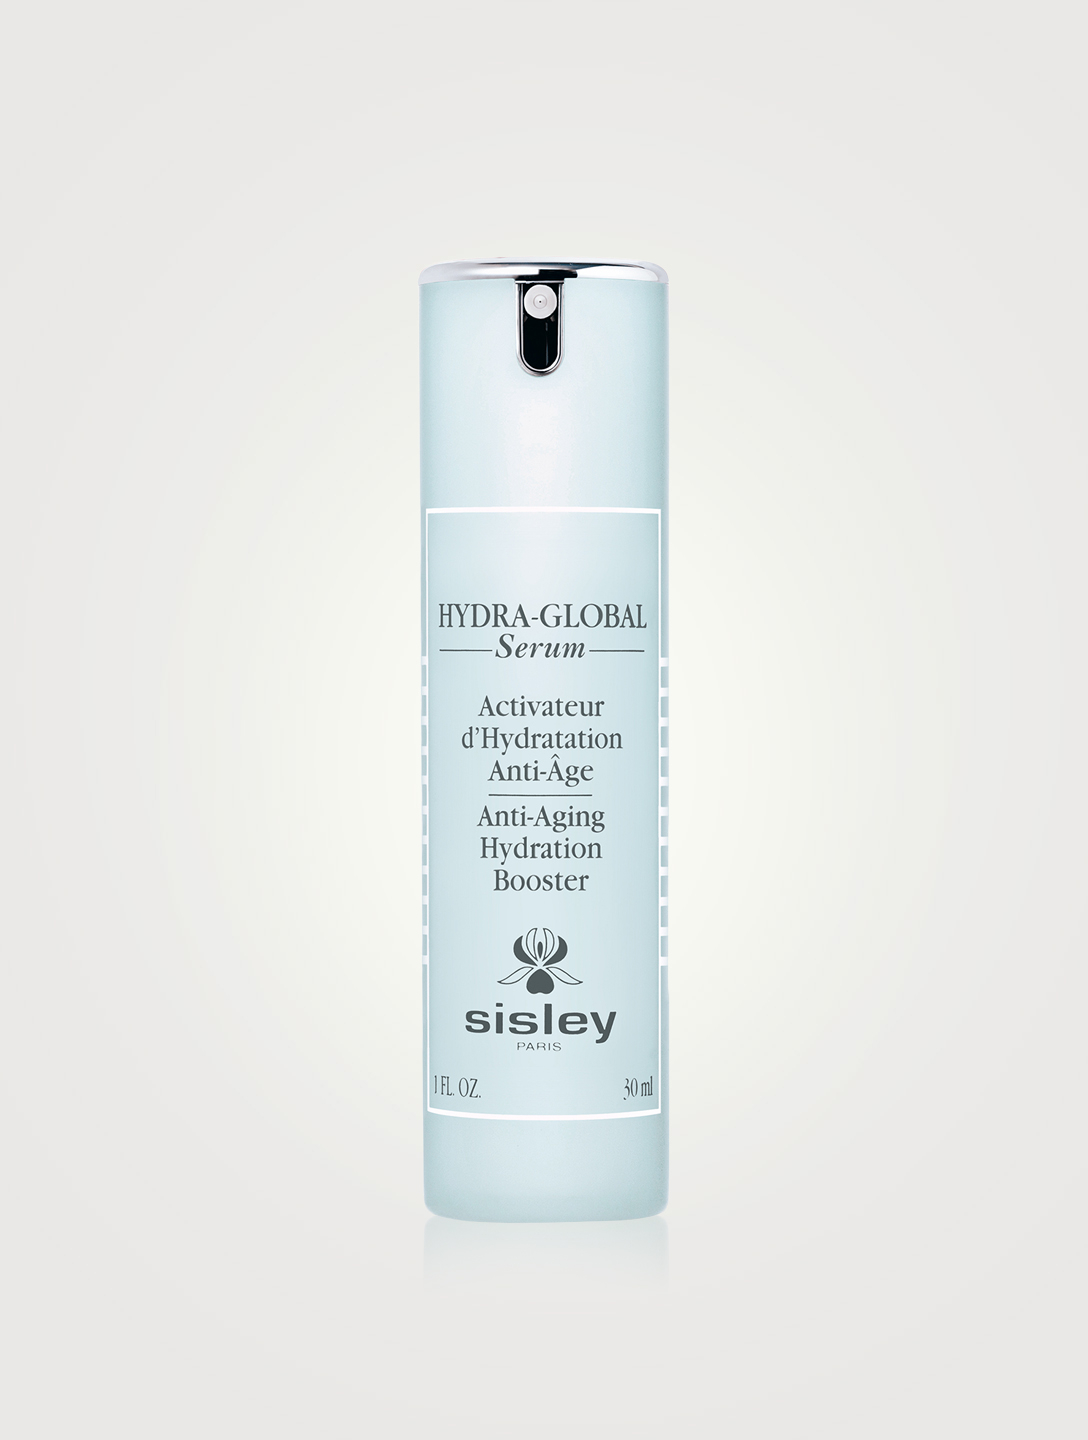 SISLEY-PARIS Sérum Hydra-Global Beauté